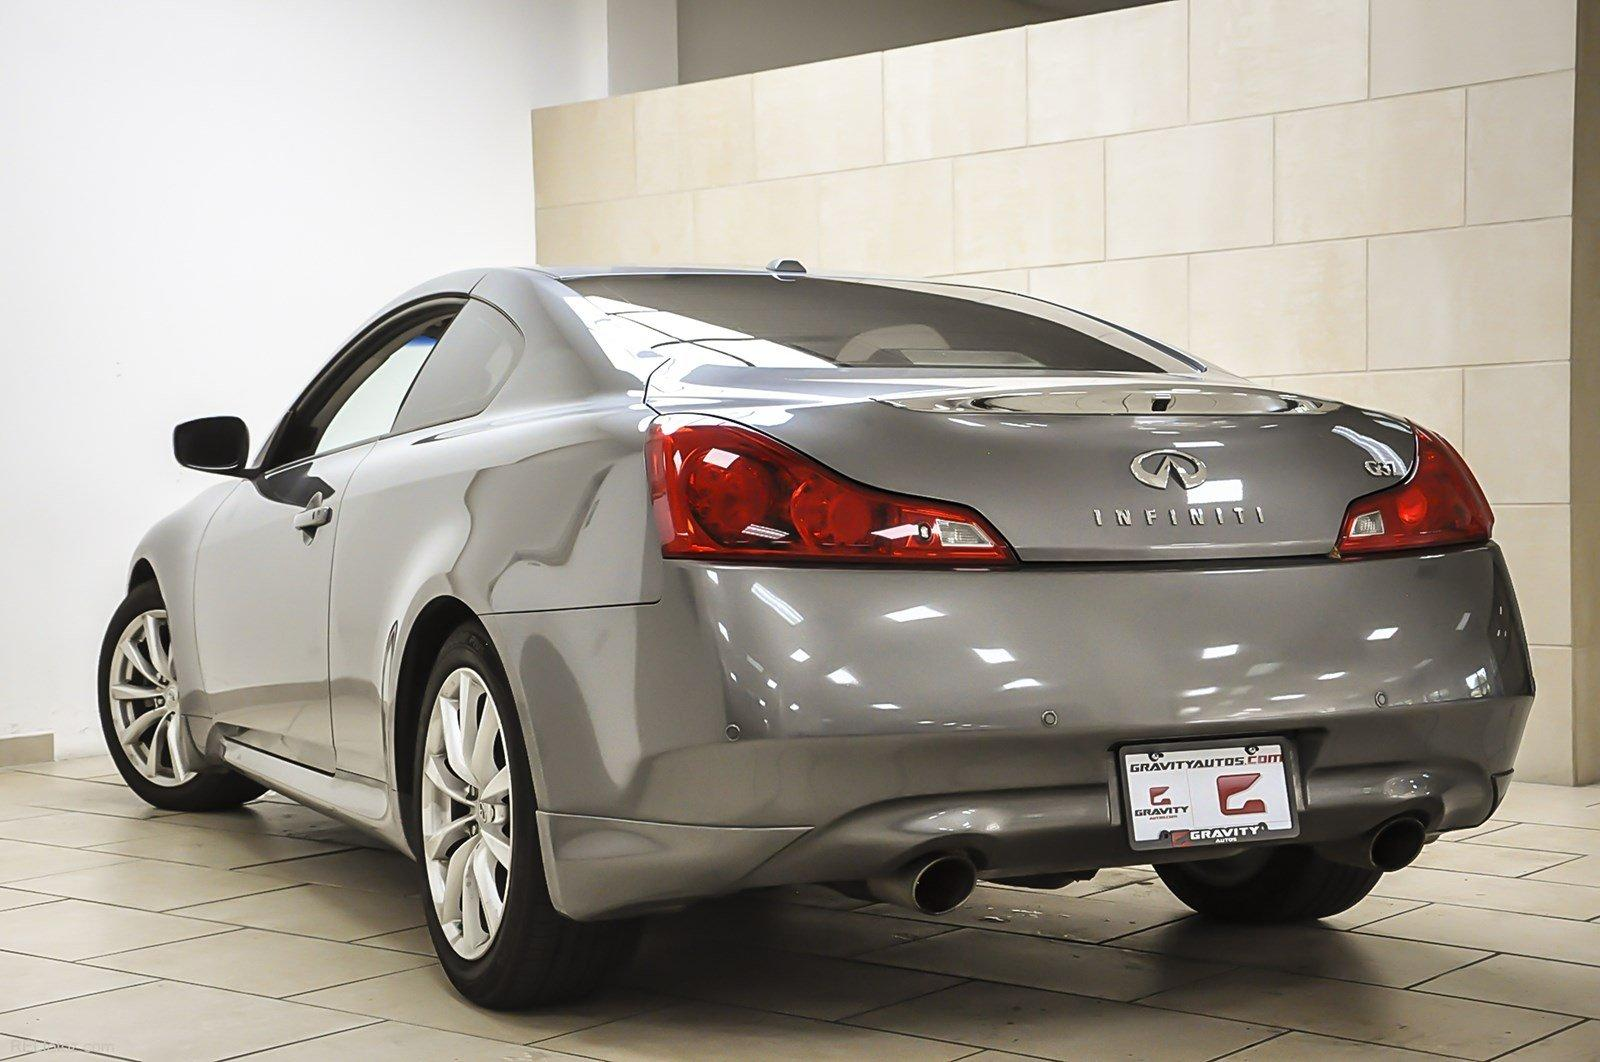 2012 Infiniti G37 Coupe Journey Stock 422138 For Sale